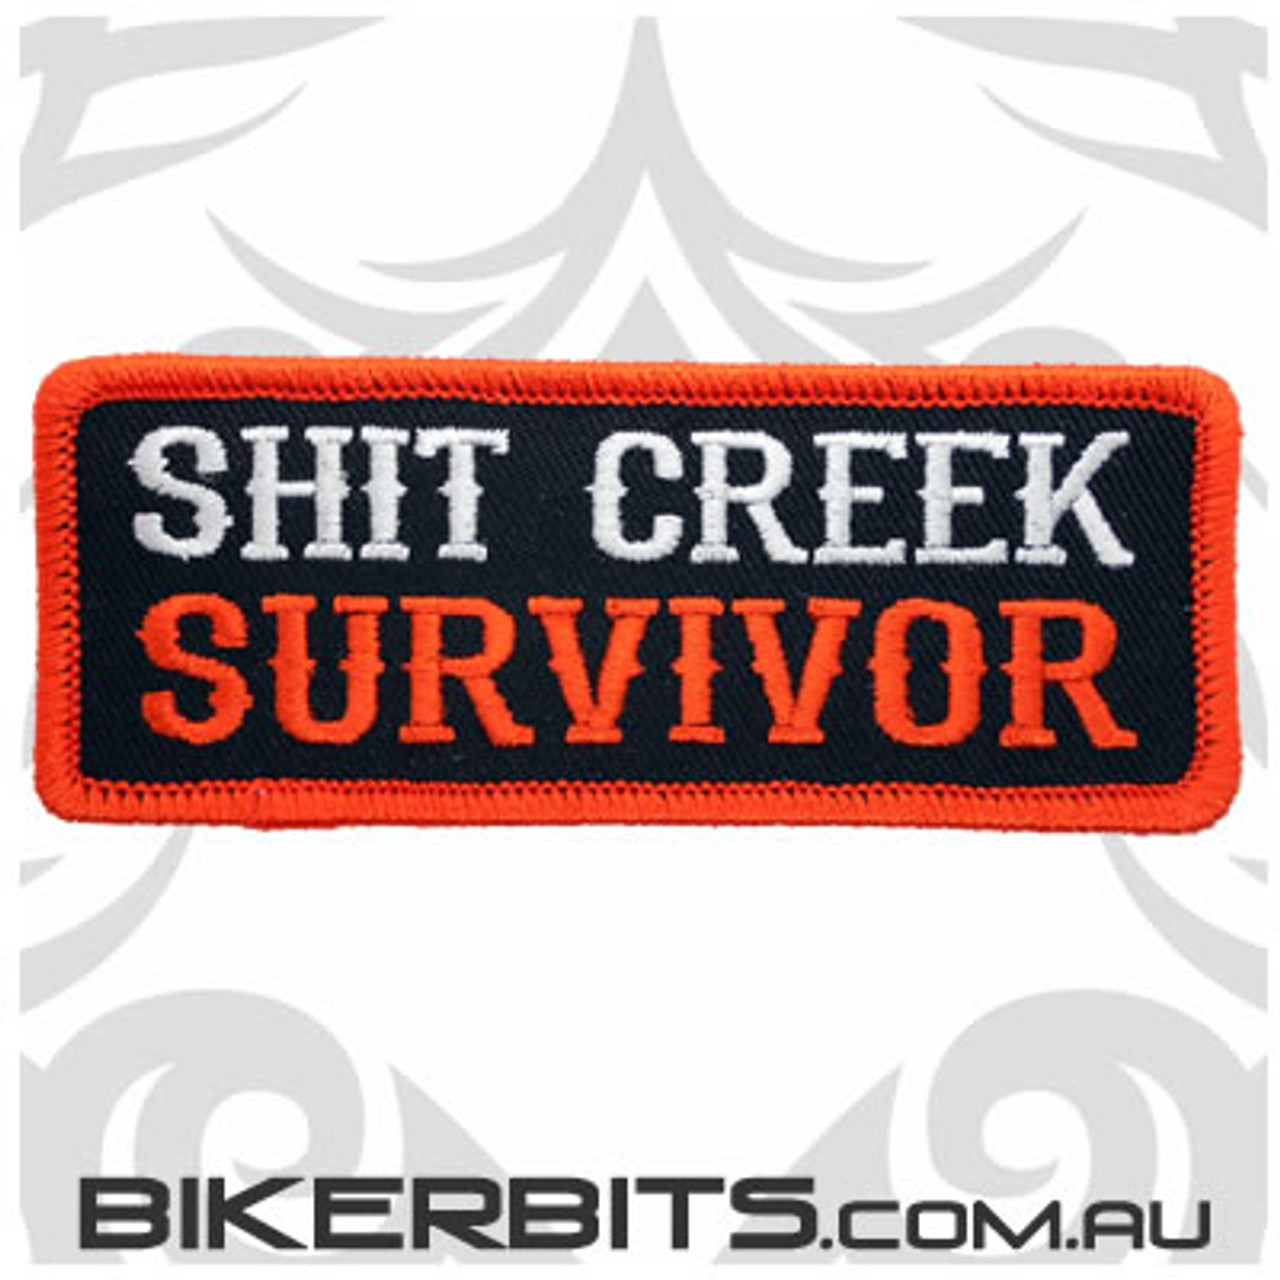 Shit Creek Survivor Biker Patch